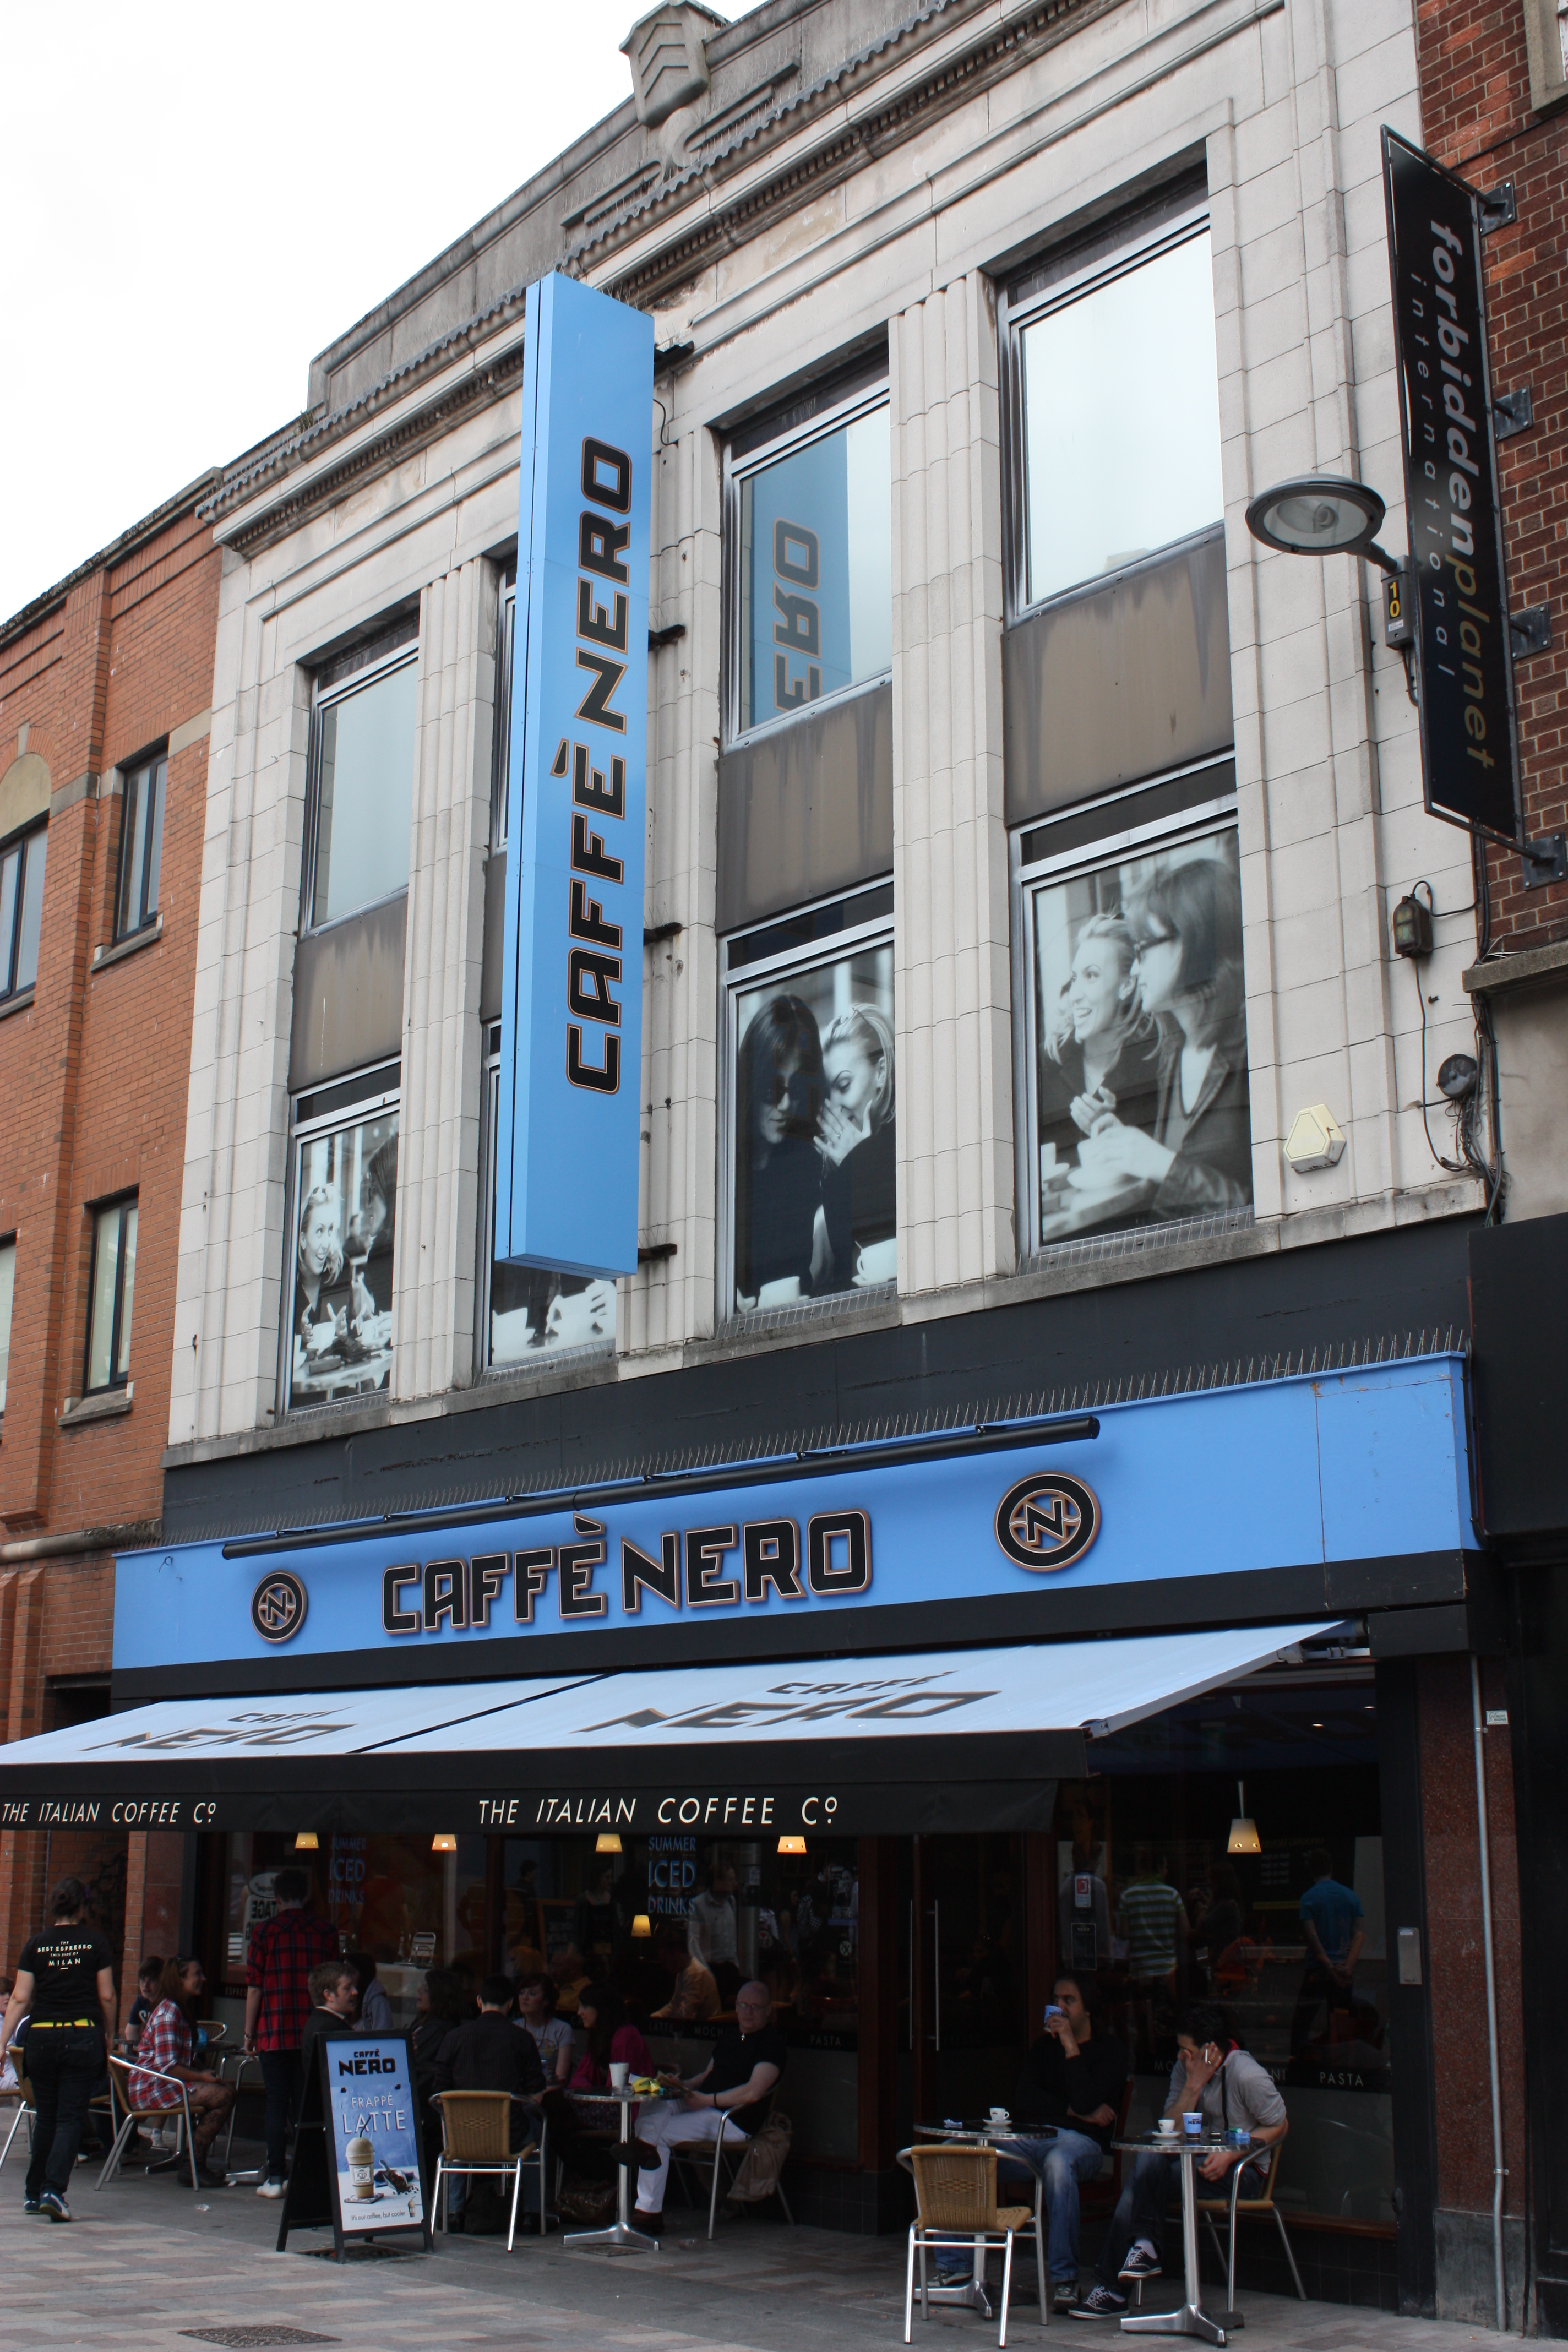 caffe nero Dilley swaps carluccio's for nero 16 may 2018 alison dilley, former marketing director at carluccio's, has joined caffe nero as its new head of international marketing.